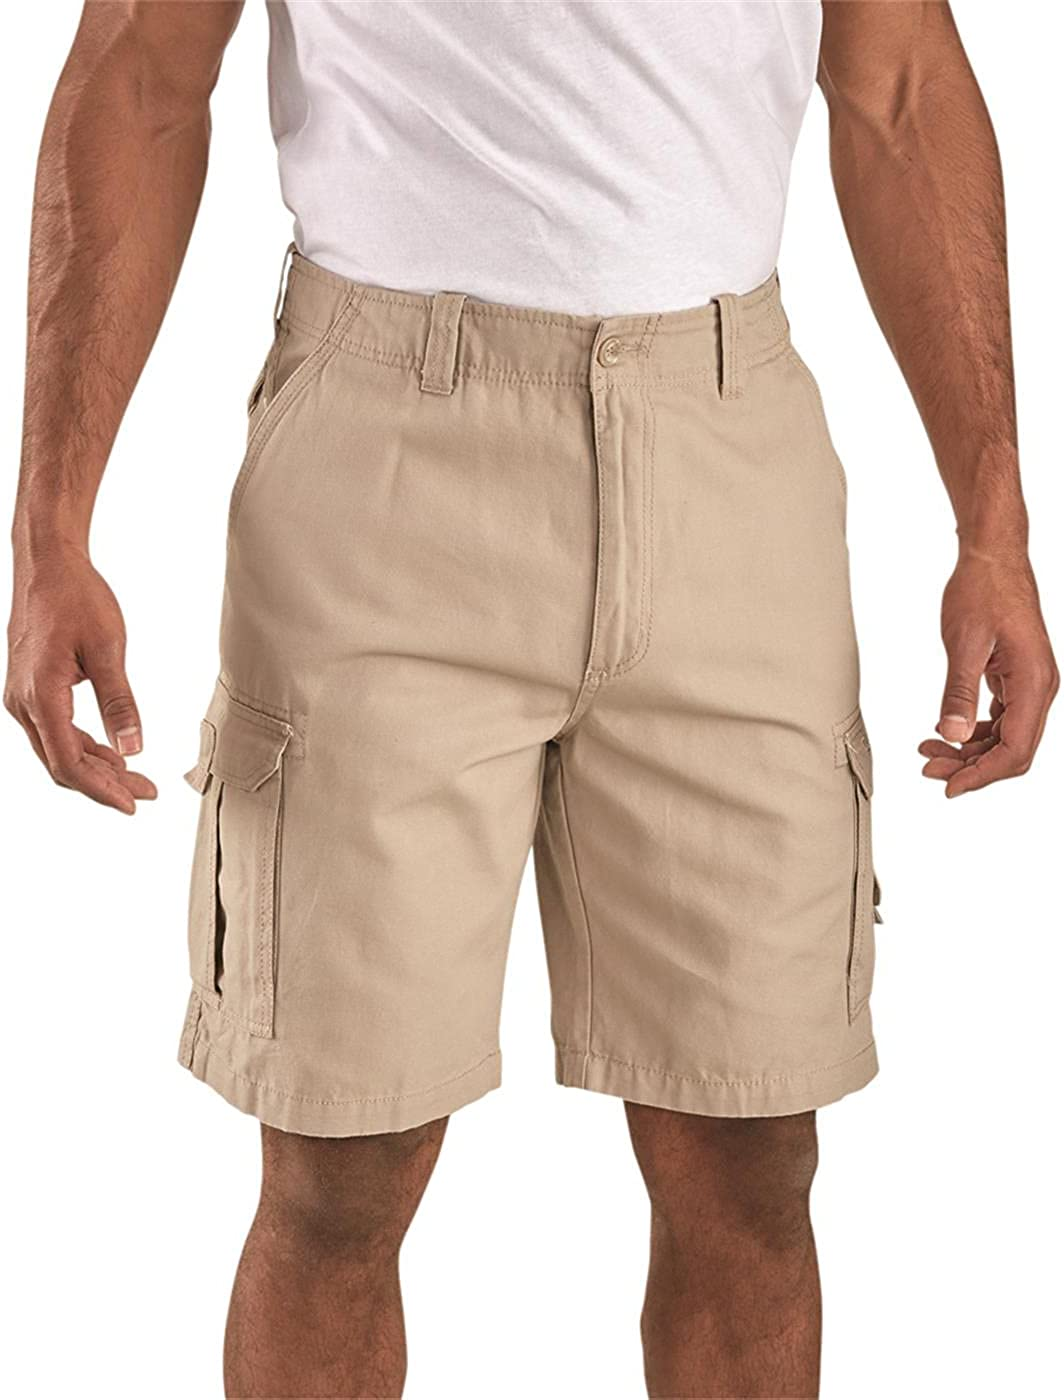 Guide Gear Men's Outdoor Cargo Shorts with Pockets, 100% Cotton Lightweight Casual Summer Bermudas for Camping, Hiking, Lounging, Khaki, W32 L6